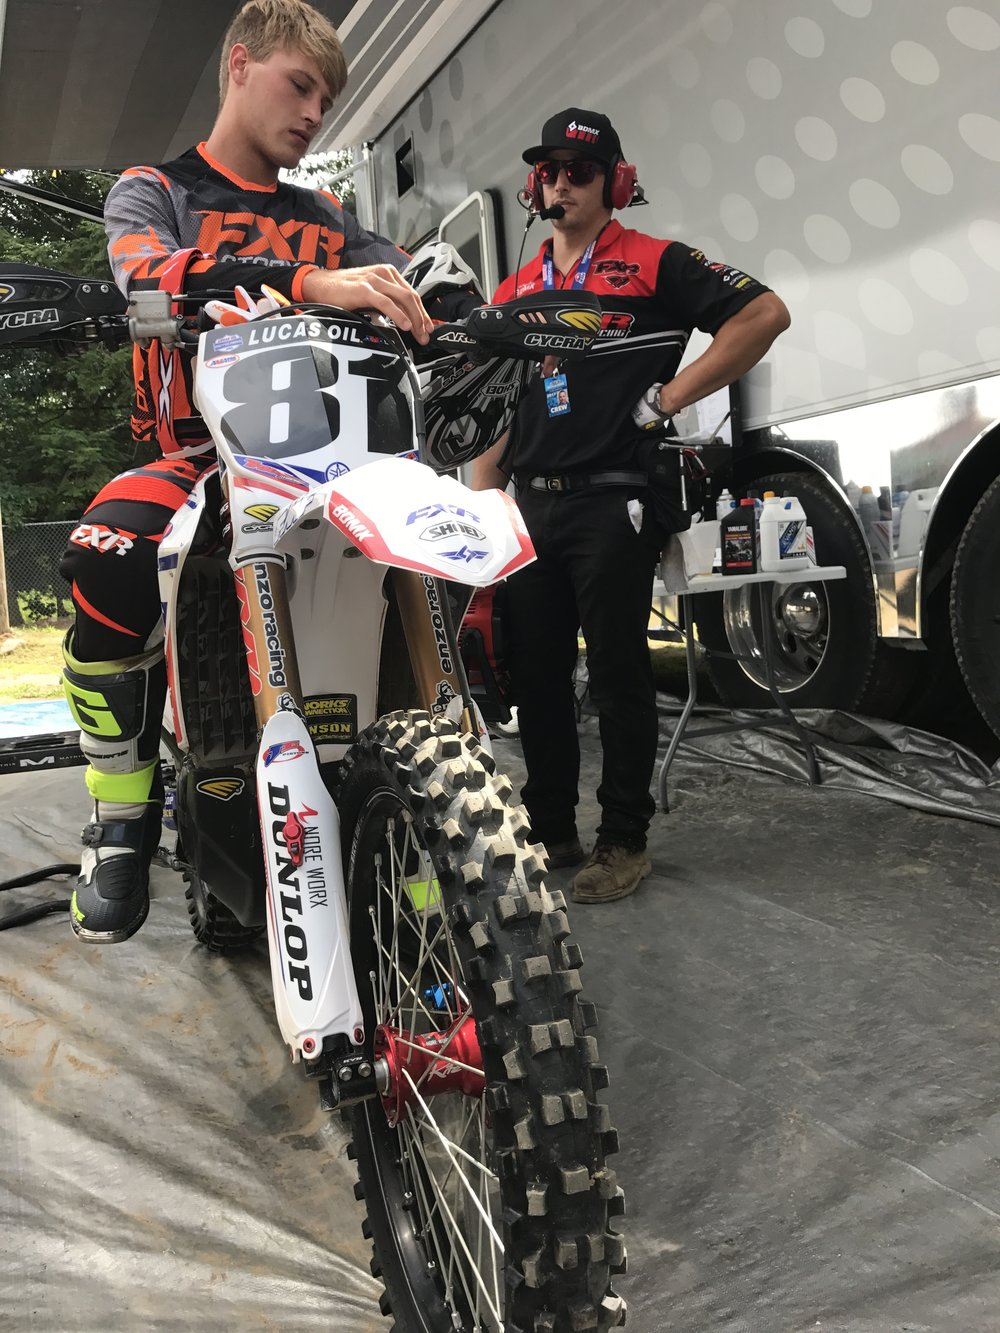 Henry Miller and his mechanic Chas of Triggr Racing get ready for another Moto.  This past weekend at Southwick this team was able to score a top 10 finish and ended out the day with 9th overall.  Not bad for a small privateer team.  Everyone at TCE is excited to see more amazing finishes and races out of these guys!